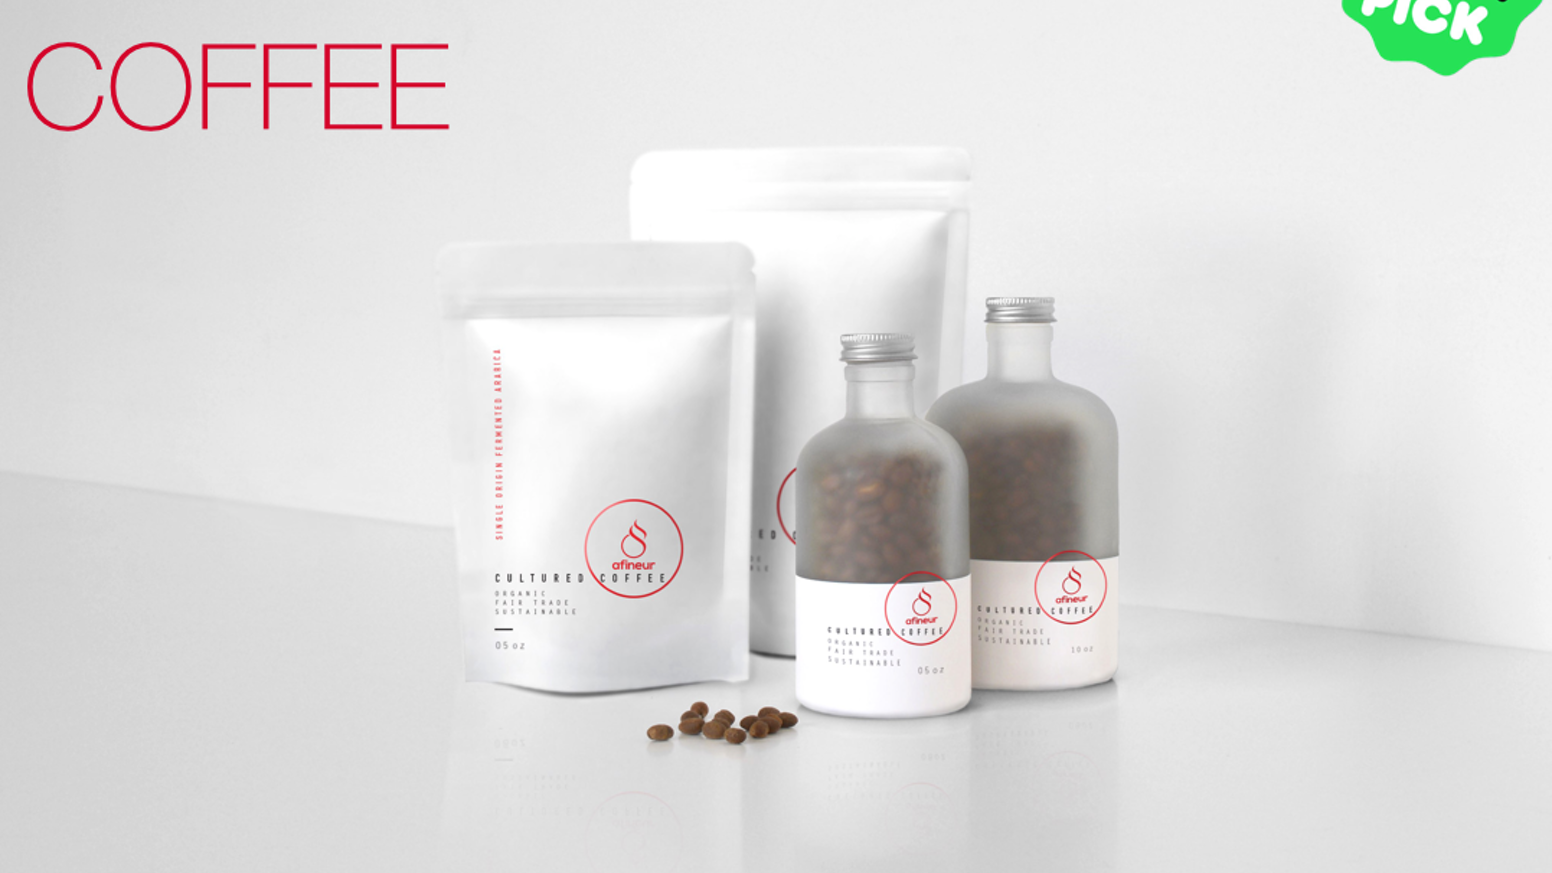 An exceptional coffee crafted by teaming up with natural microorganisms to take its flavor to the next level